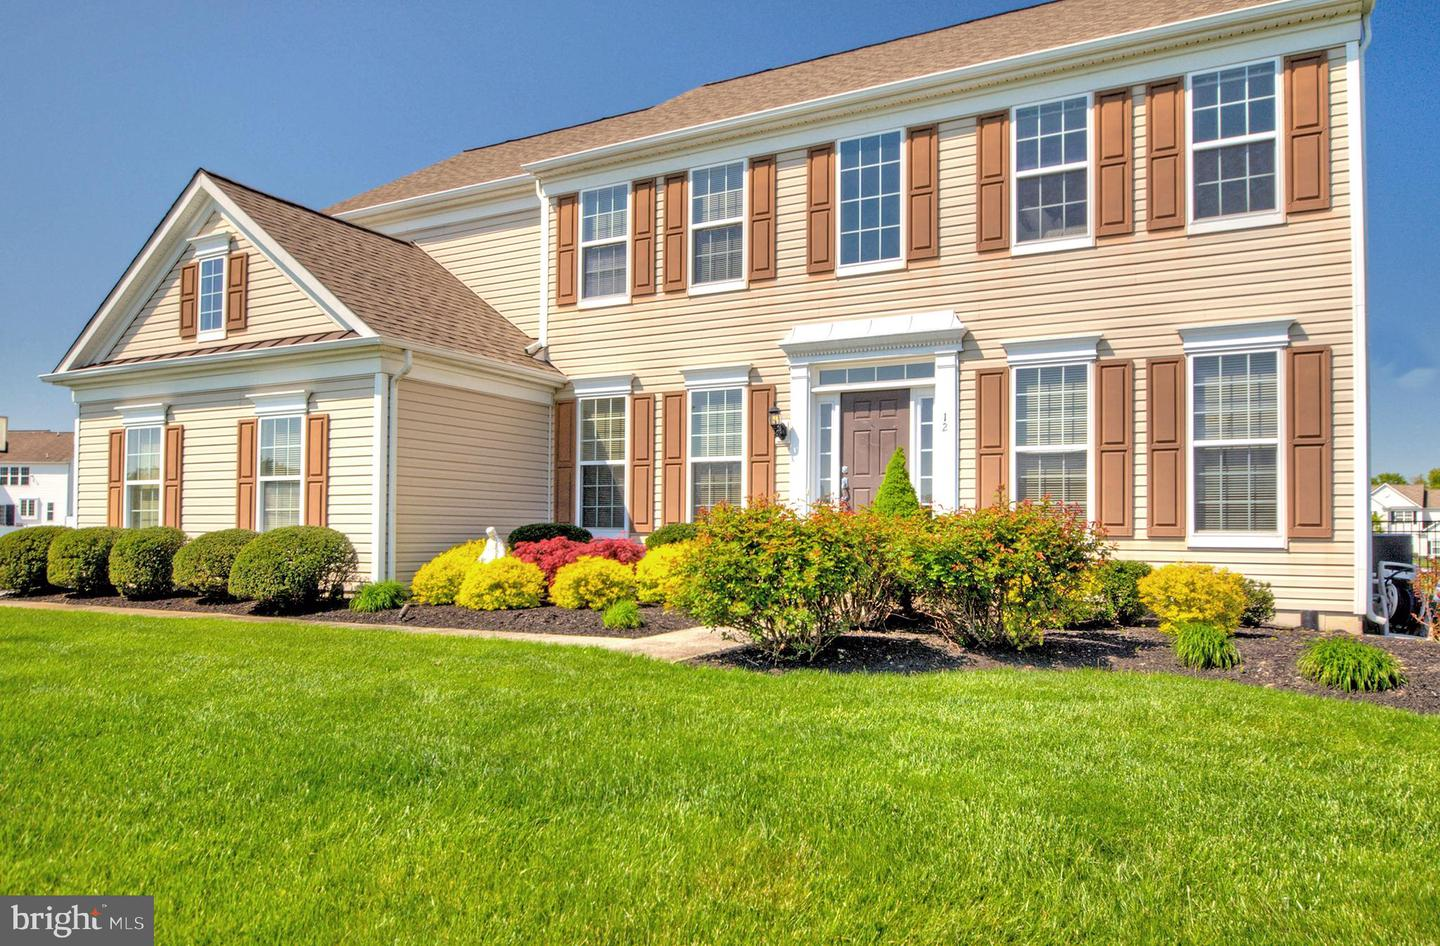 12 PUTNAM CT, MICKLETON, NJ 08056